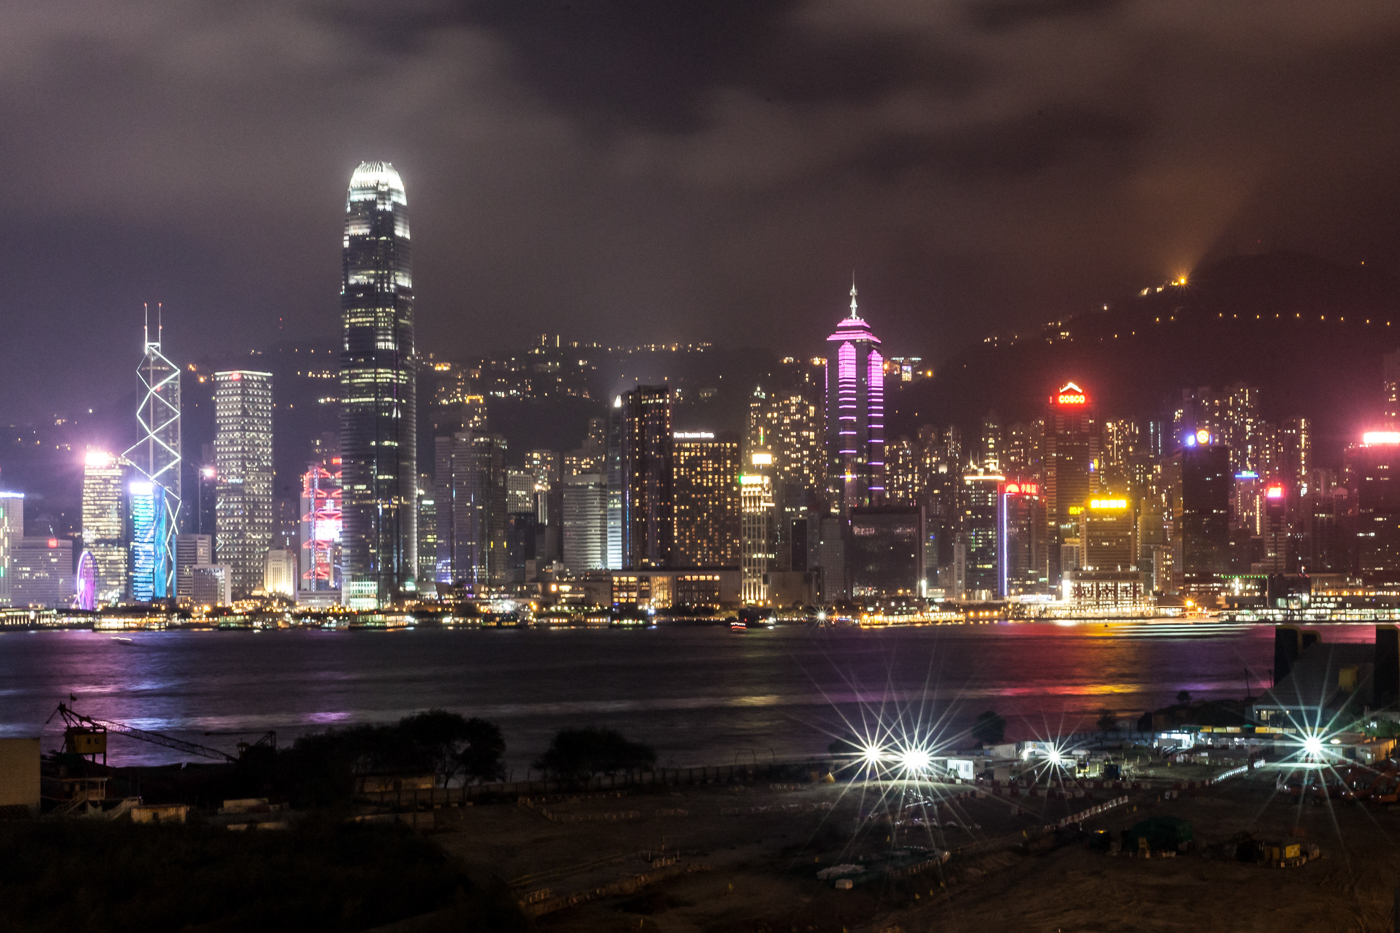 The Hong Kong city skyline at night, from outside The Ritz-Carlton hotel.